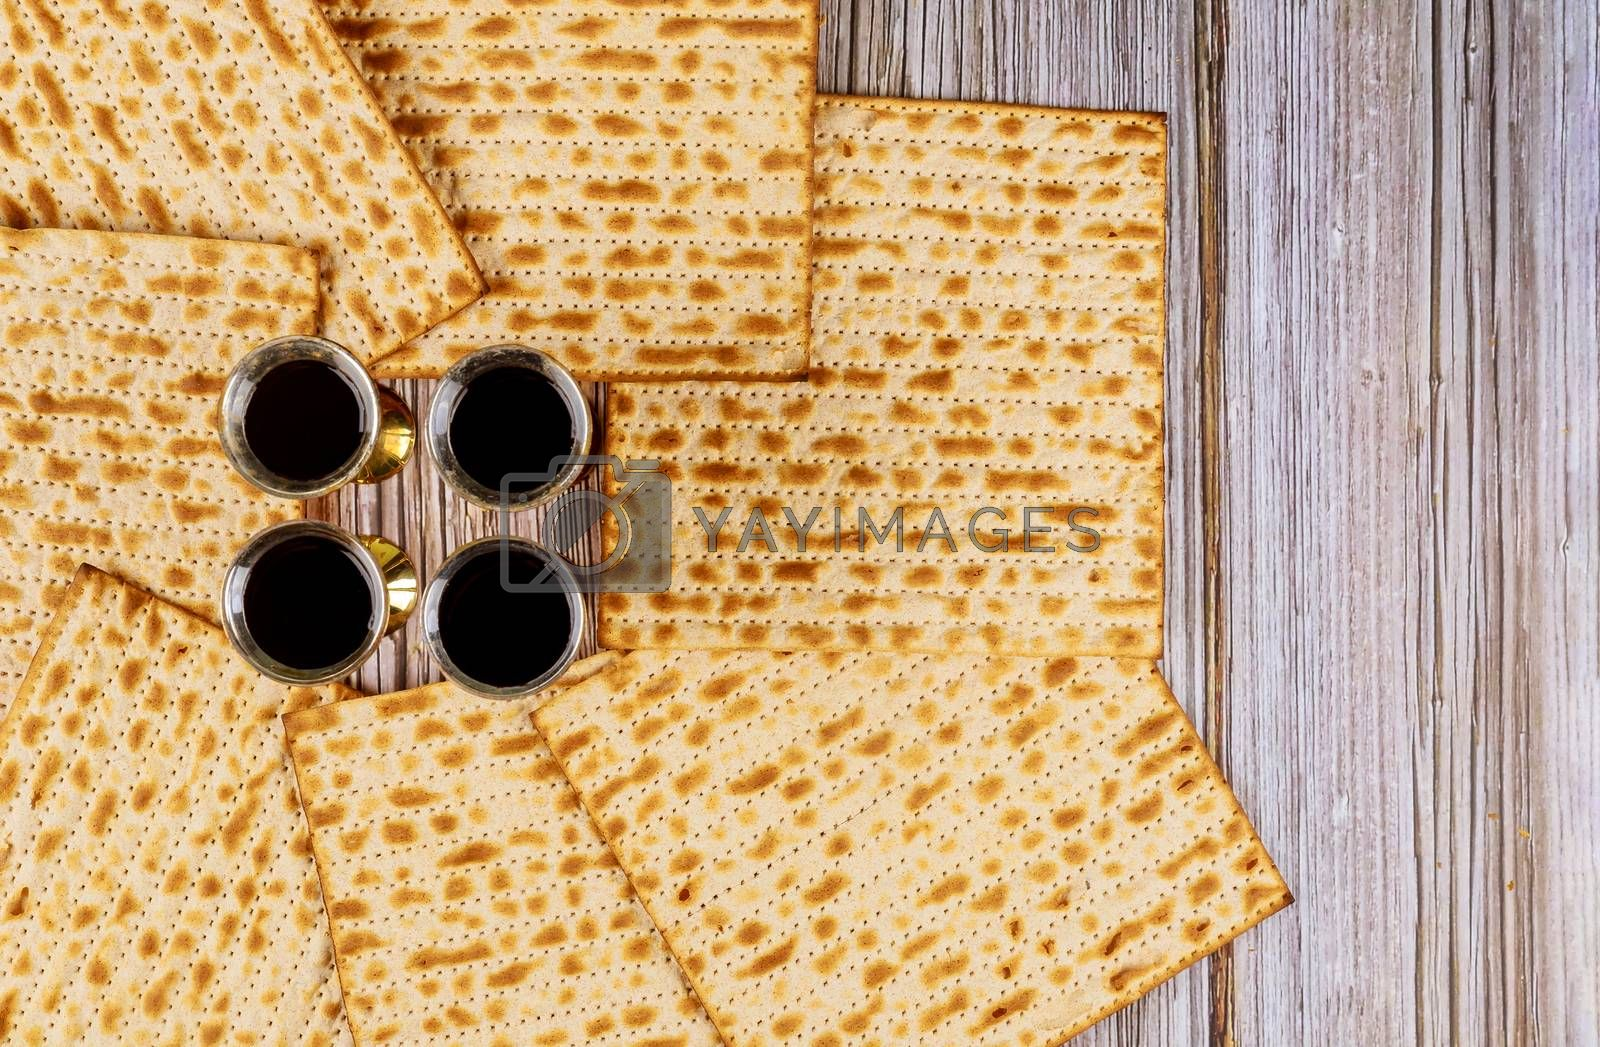 Passover matzoh jewish holiday bread and four glasses kosher wine over wooden table background.